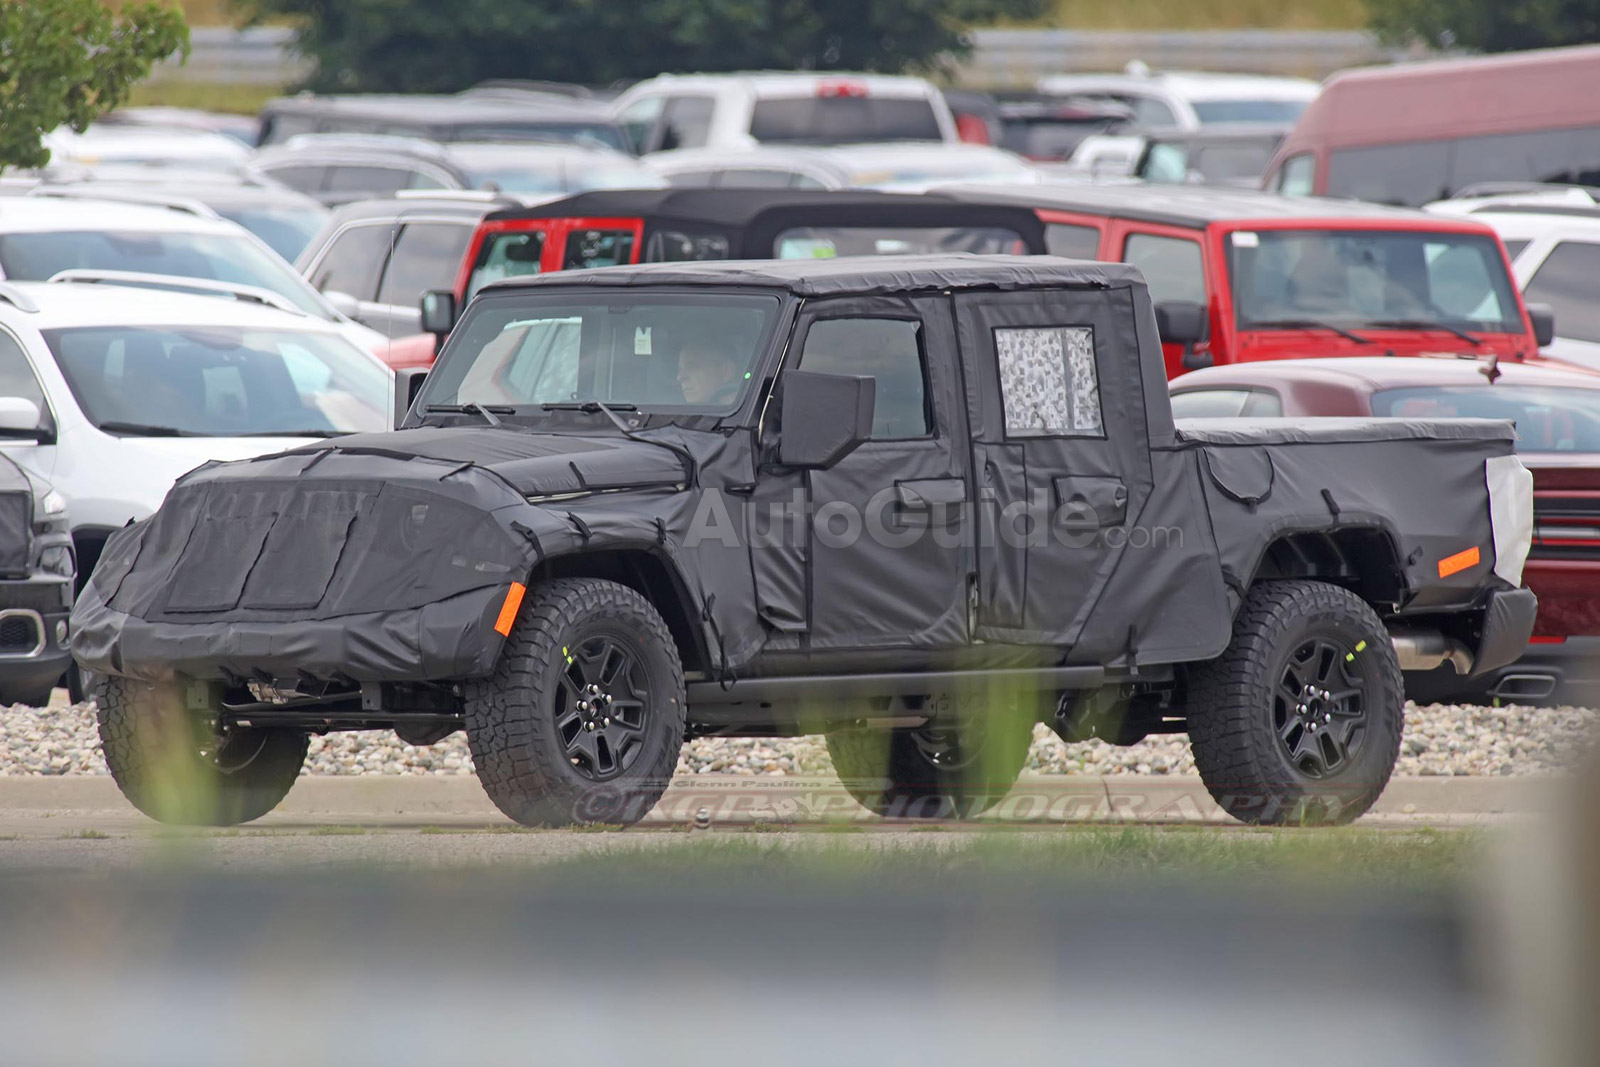 spy photos reveal more about jeep wrangler pickup news. Black Bedroom Furniture Sets. Home Design Ideas